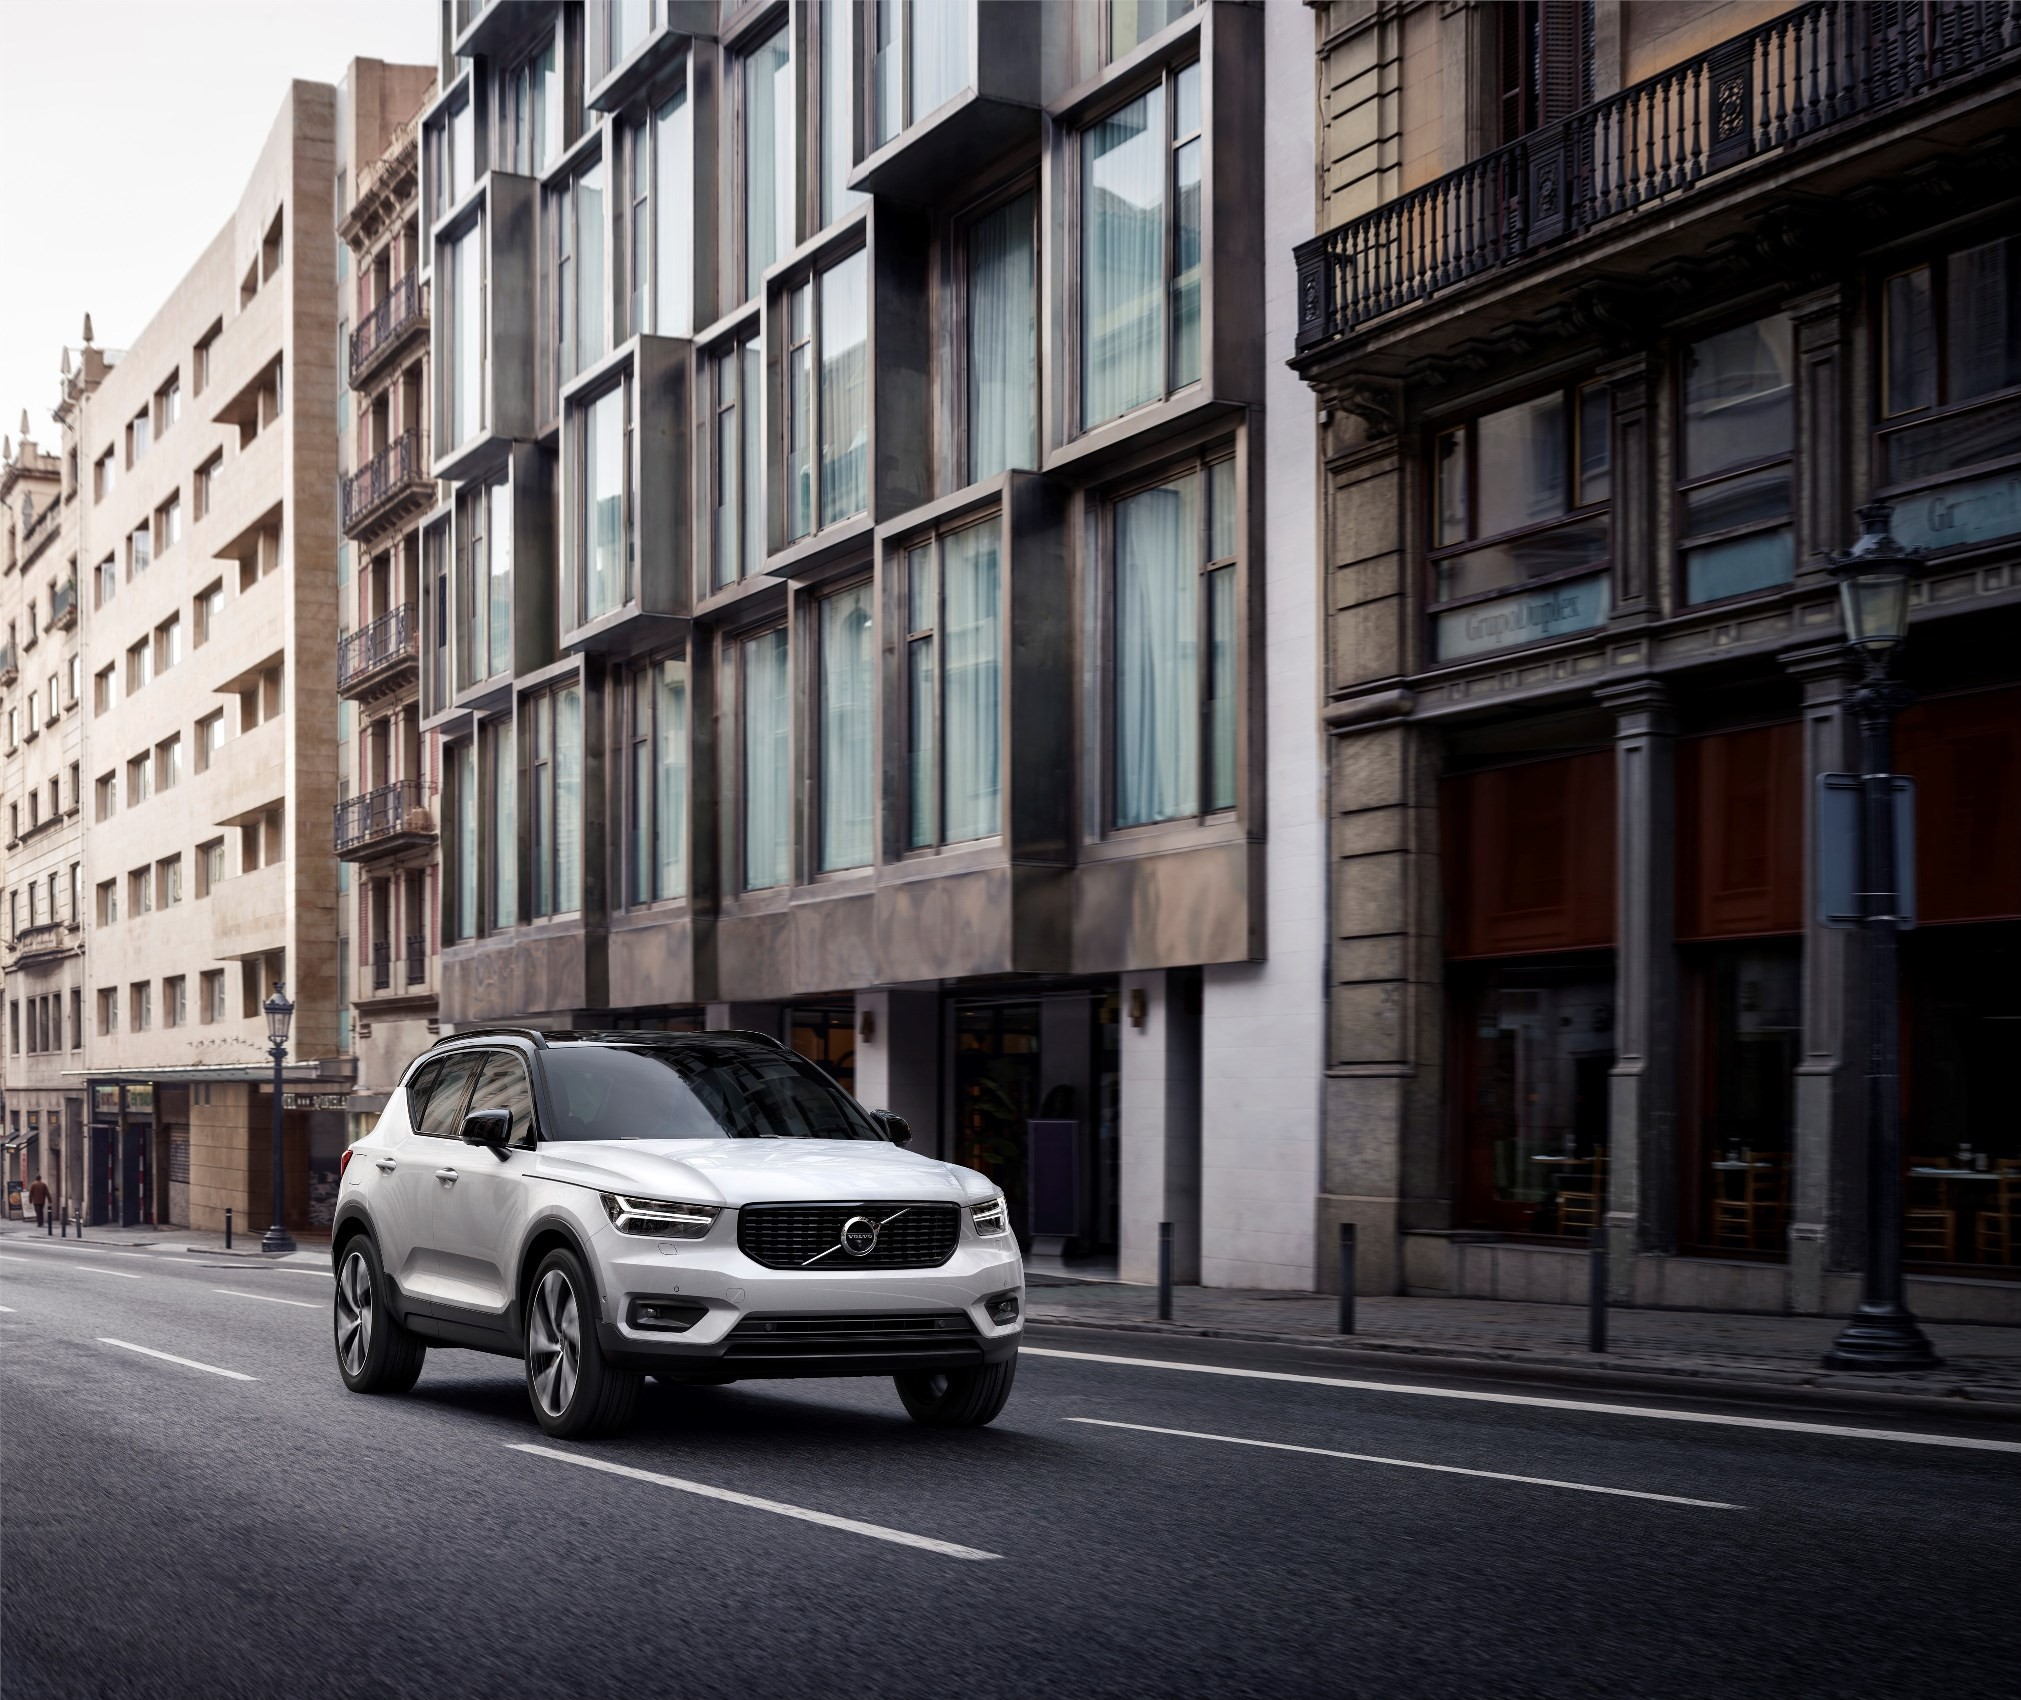 Largest Volvo Suv: 2015 Volvo XC90 Rendered As Pickup Truck From Your